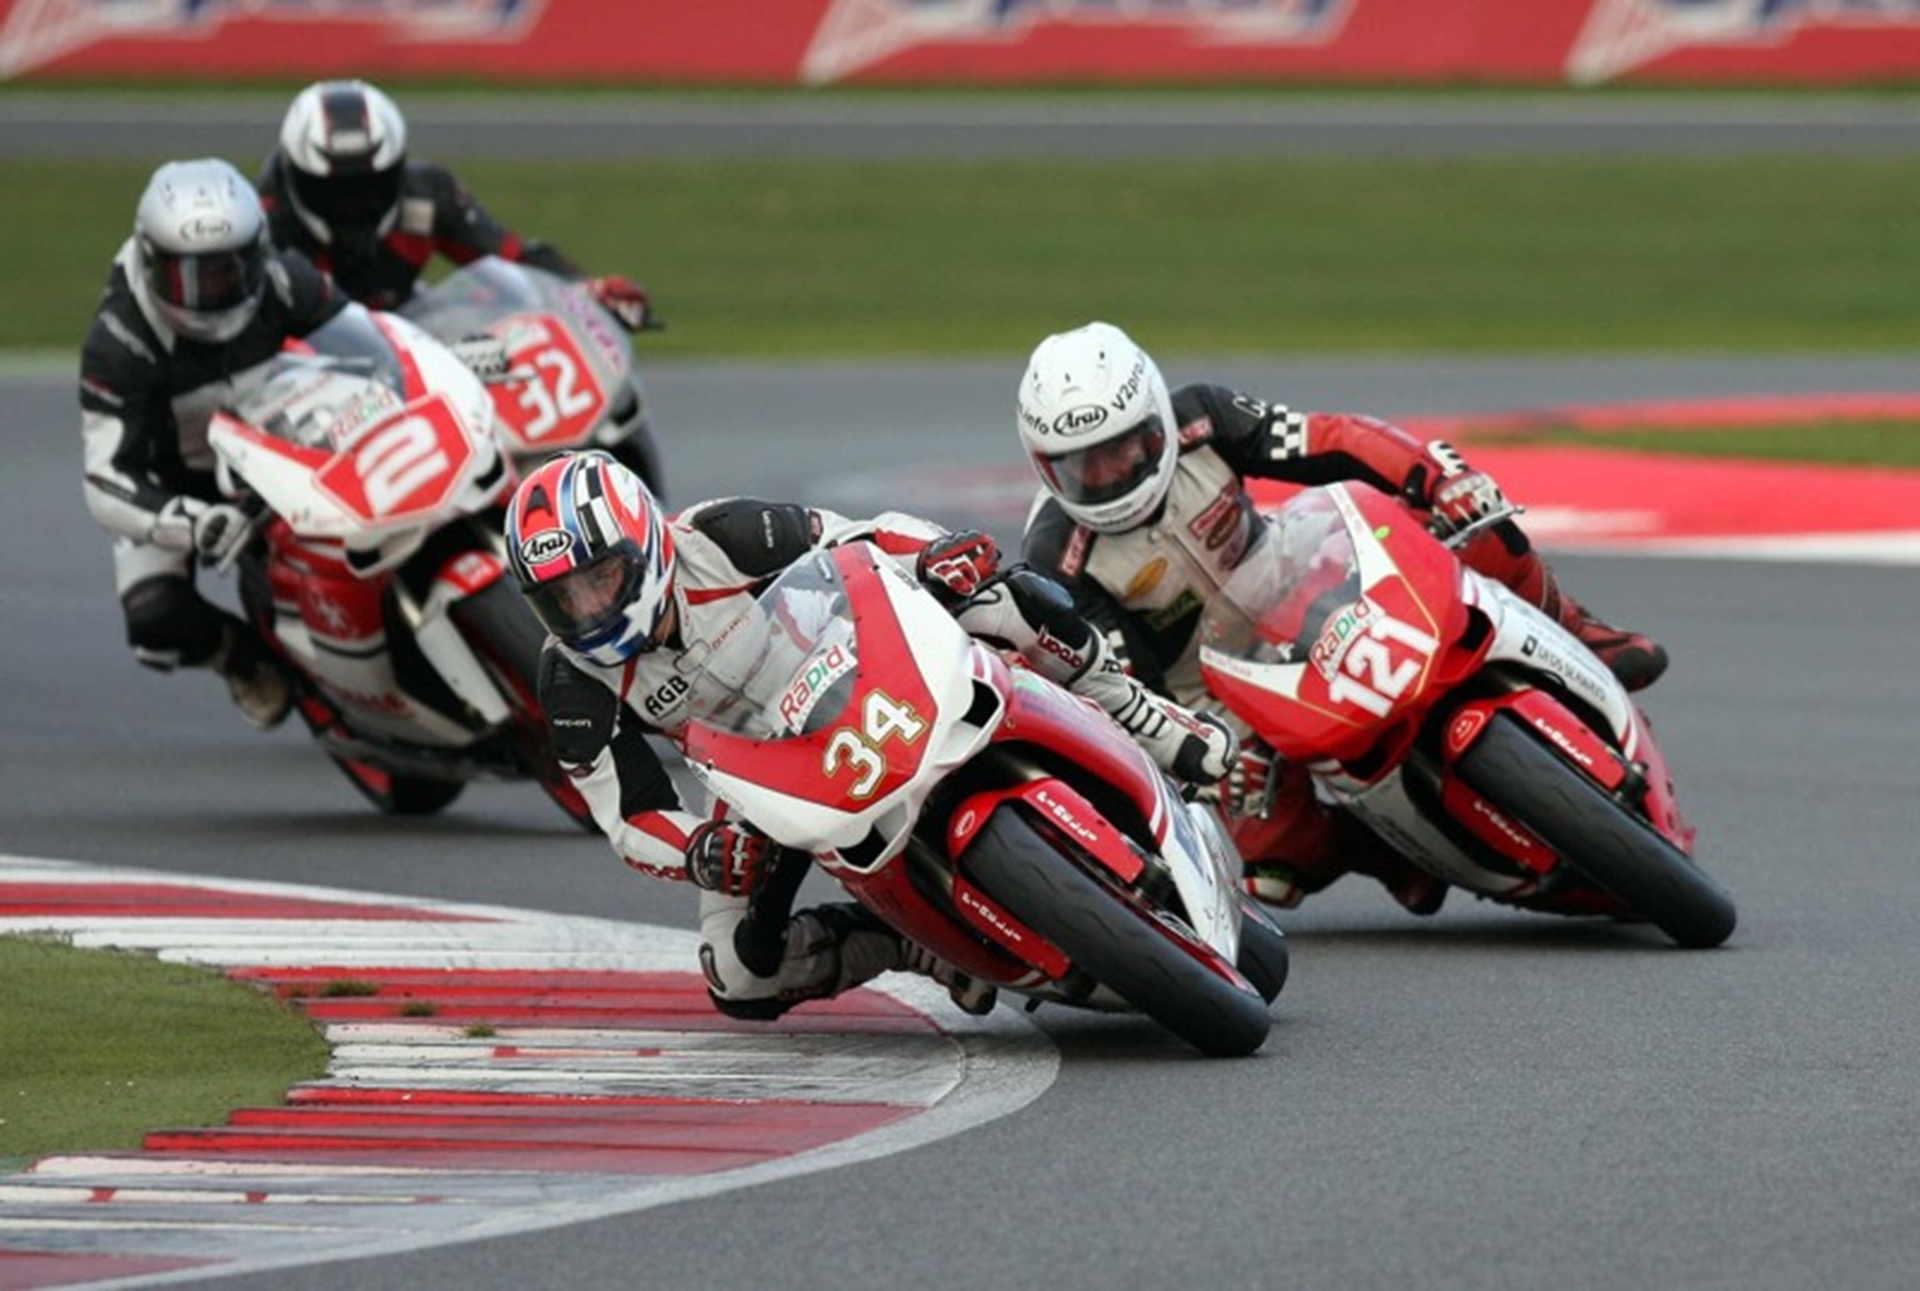 The Ducati 848 Challenge returns for 2012